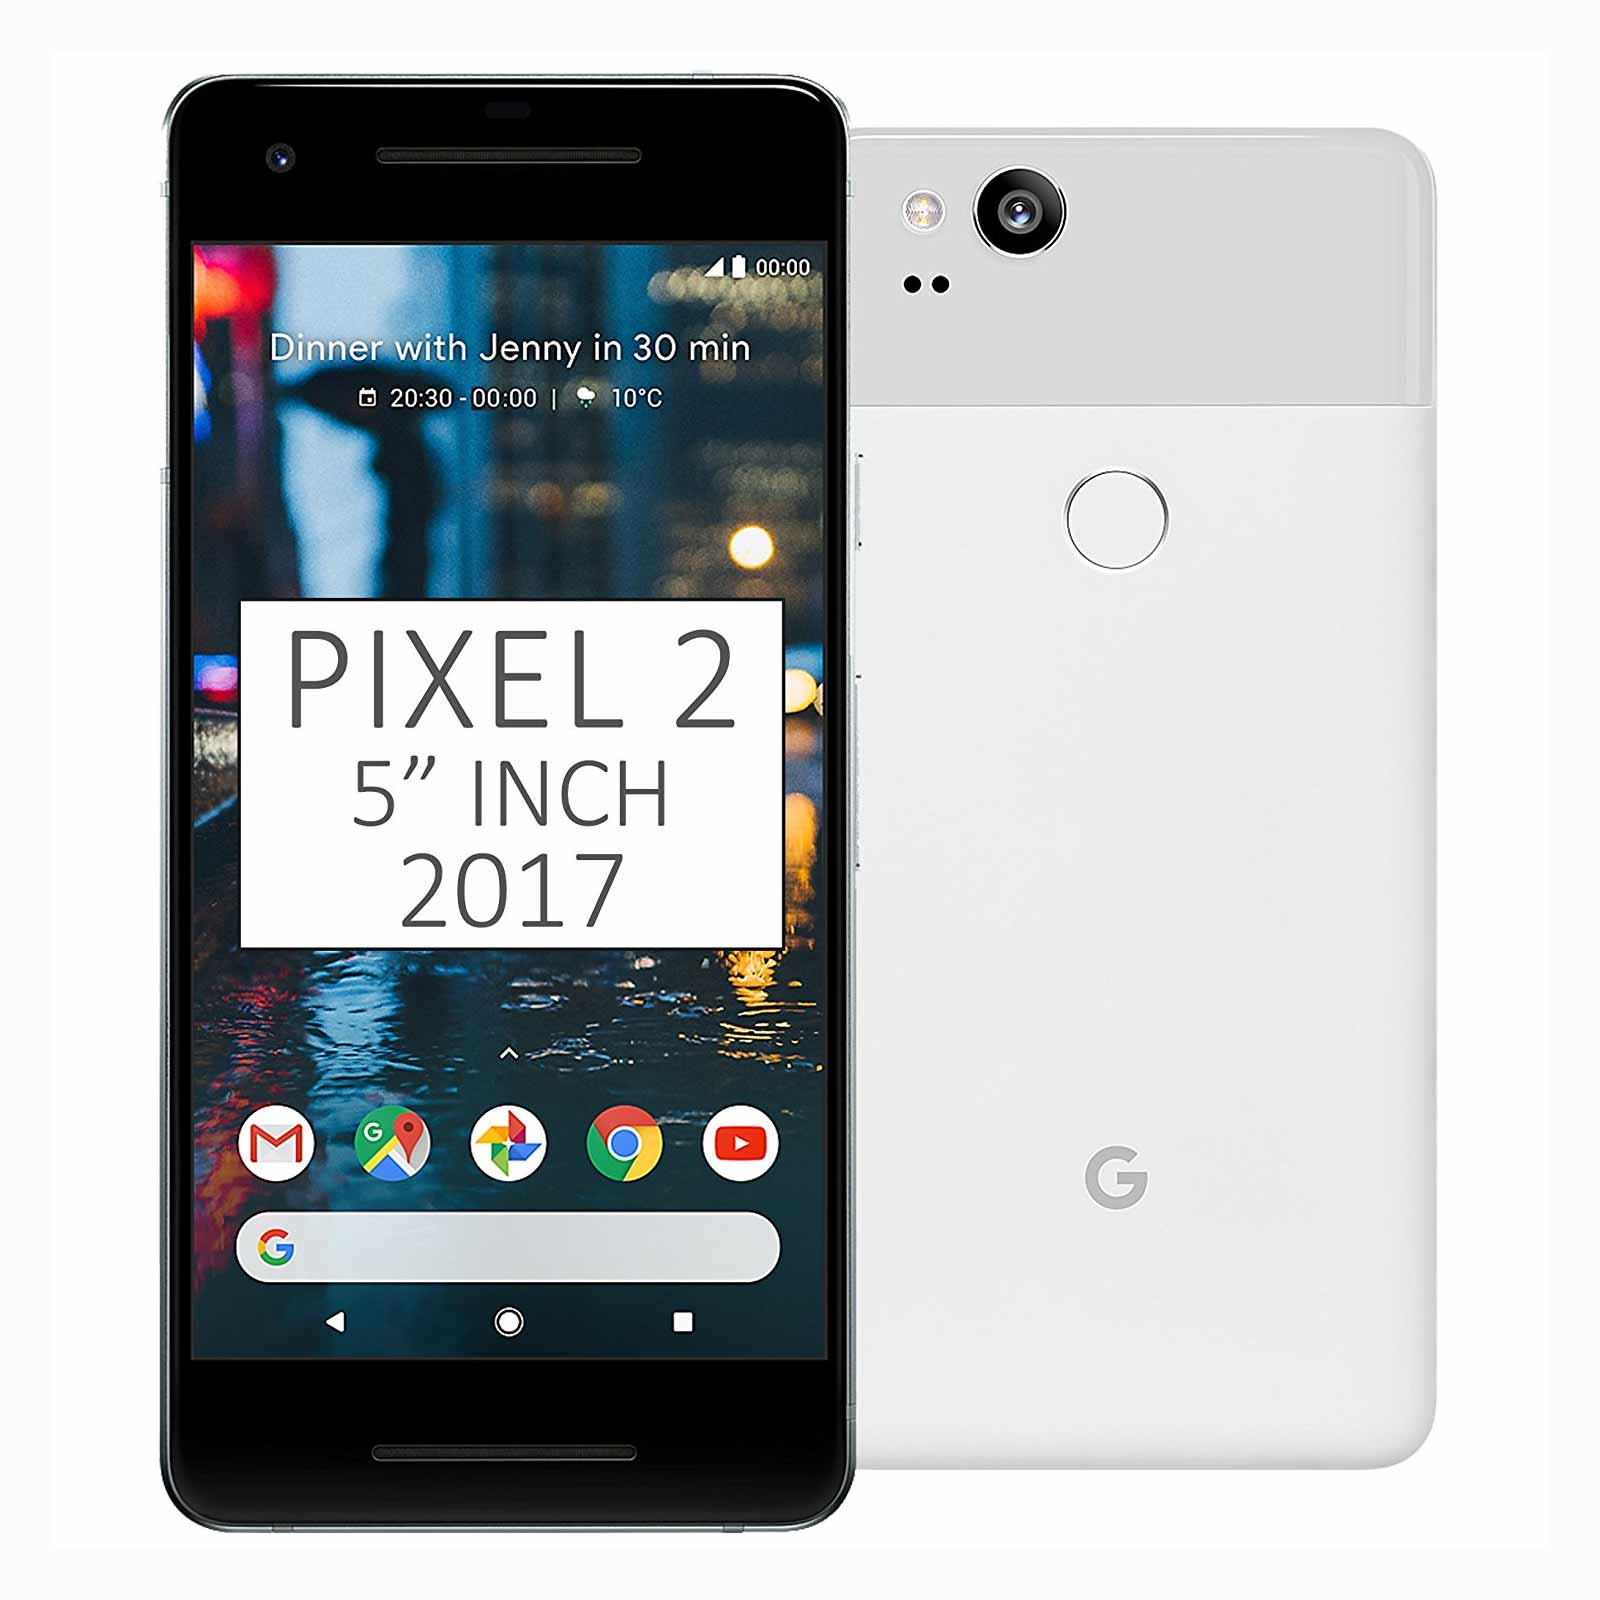 """New  Pixel 2 64GB G011A GSM + CDMA Factory Unlocked 5"""" AMOLED Display 4GB RAM 12.2MP by Google Smartphone -  Clearly White - USA Version"""